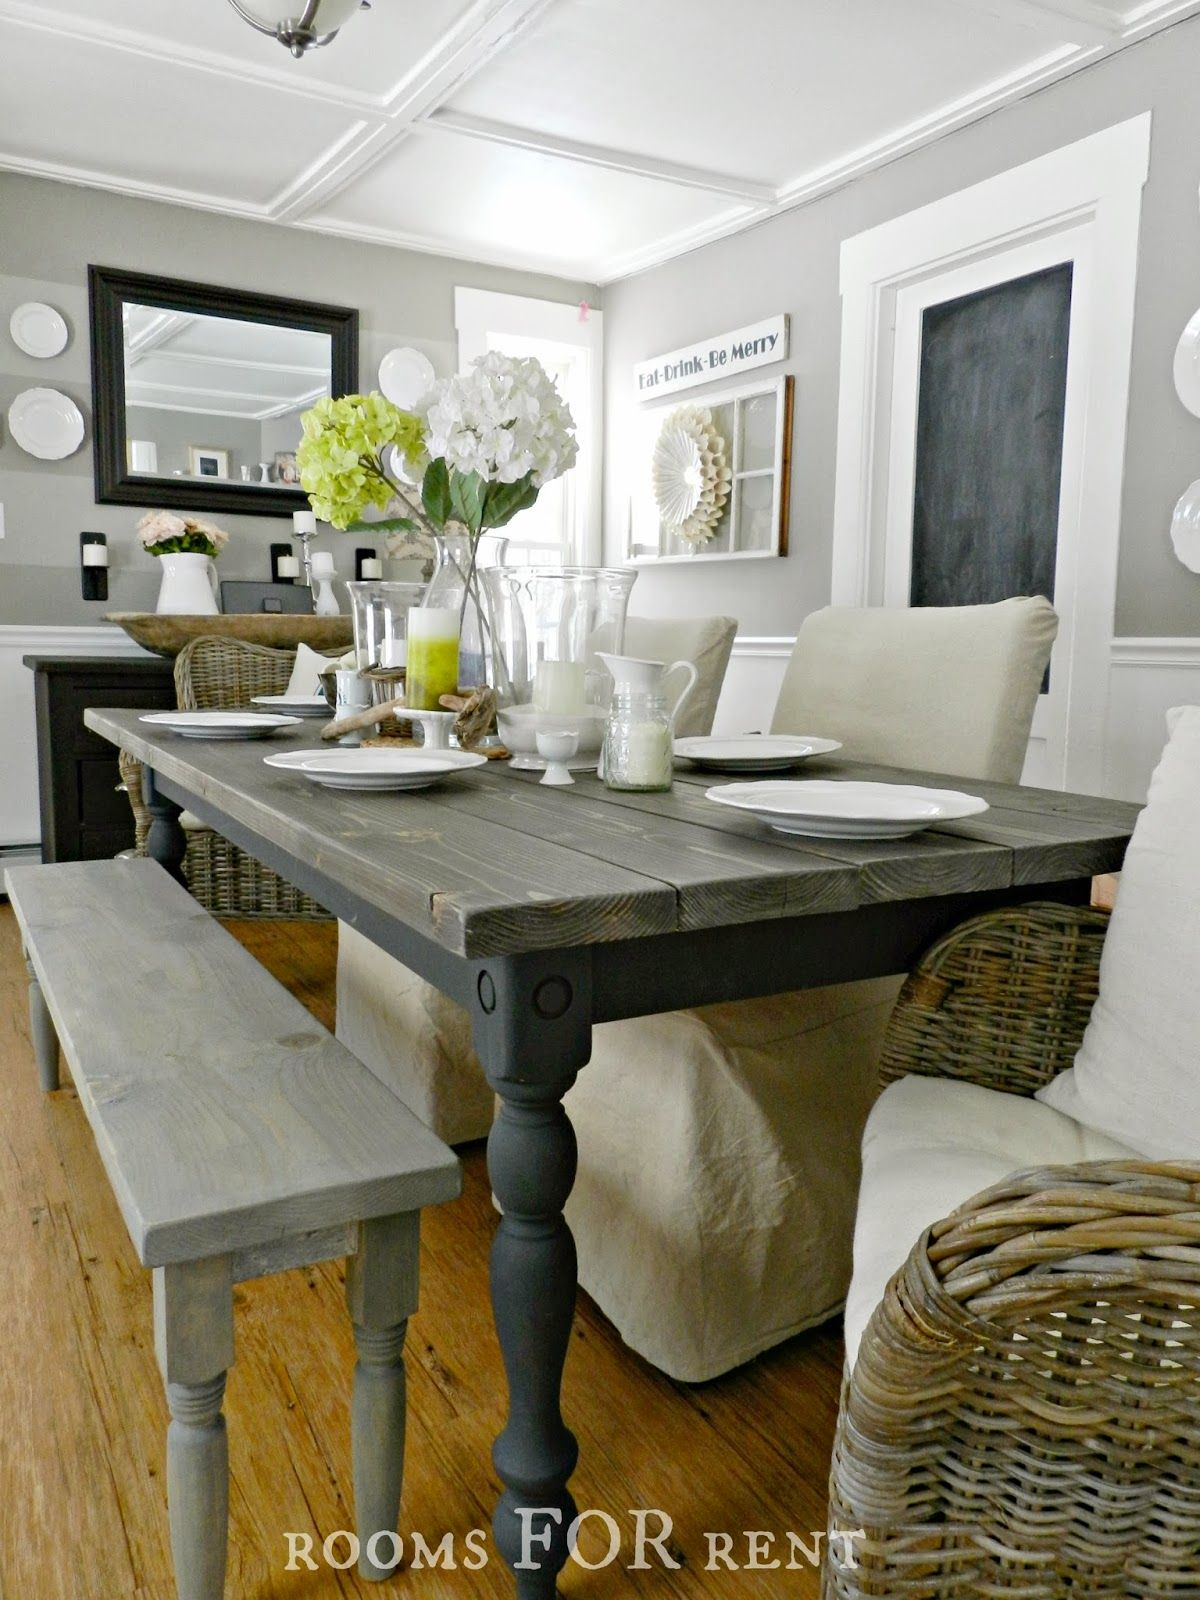 How To Build A Farmhouse Dining Table Using Stock Lumber And Salvaged Table Legs